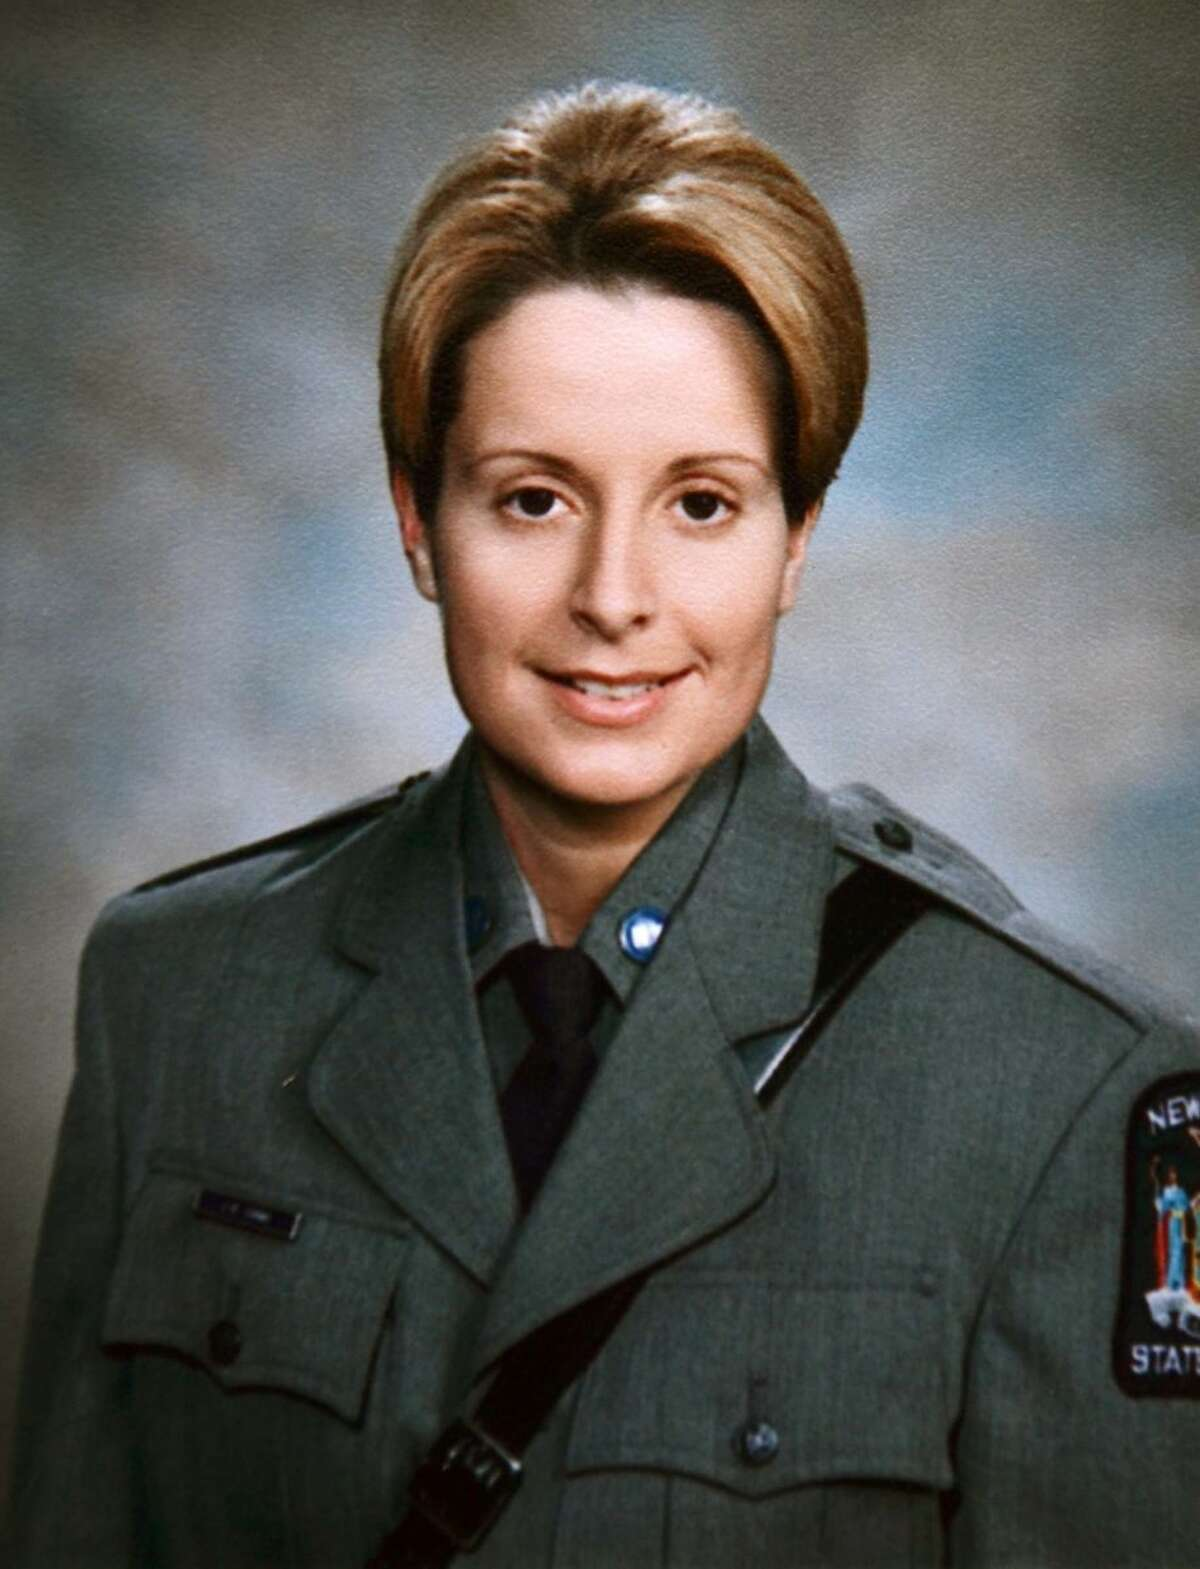 Trooper Jennifer M. Czarnecki died on Saturday. She was part of the search-and-recovery effort after the Sept. 11, 2001 terror attacks and died from an illness that stems from her time working at ground zero, acting Superintendent Kevin P. Bruen said Monday